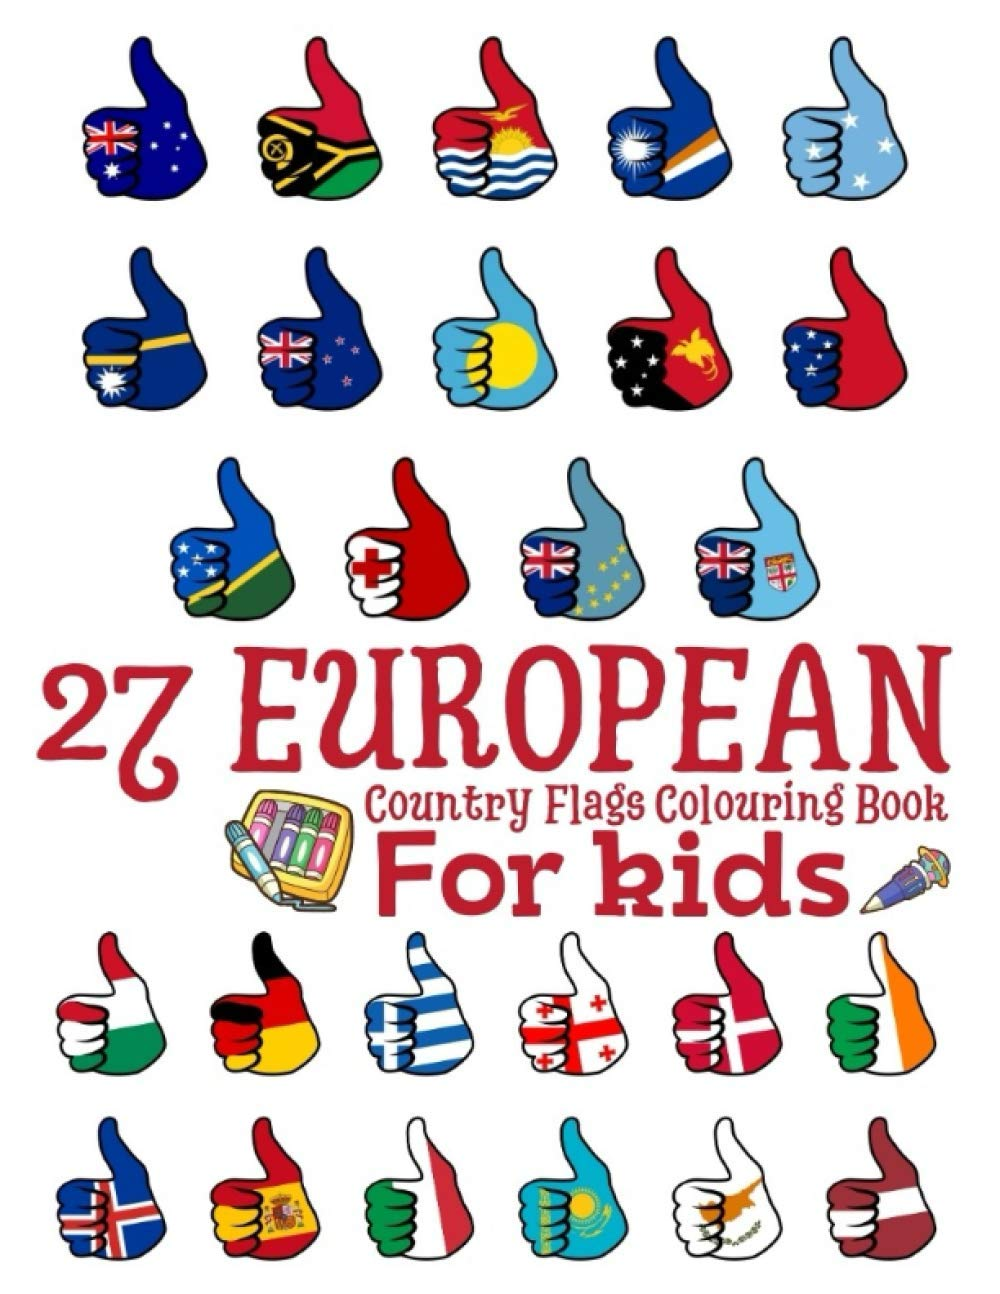 Country Flags Colouring Book 27 European Countries Flags Coloring Book For Kids A Great Art Book Gift For Children With Color Guides To Coloring Fun Learning Designs On Single Sided Rosey Mr